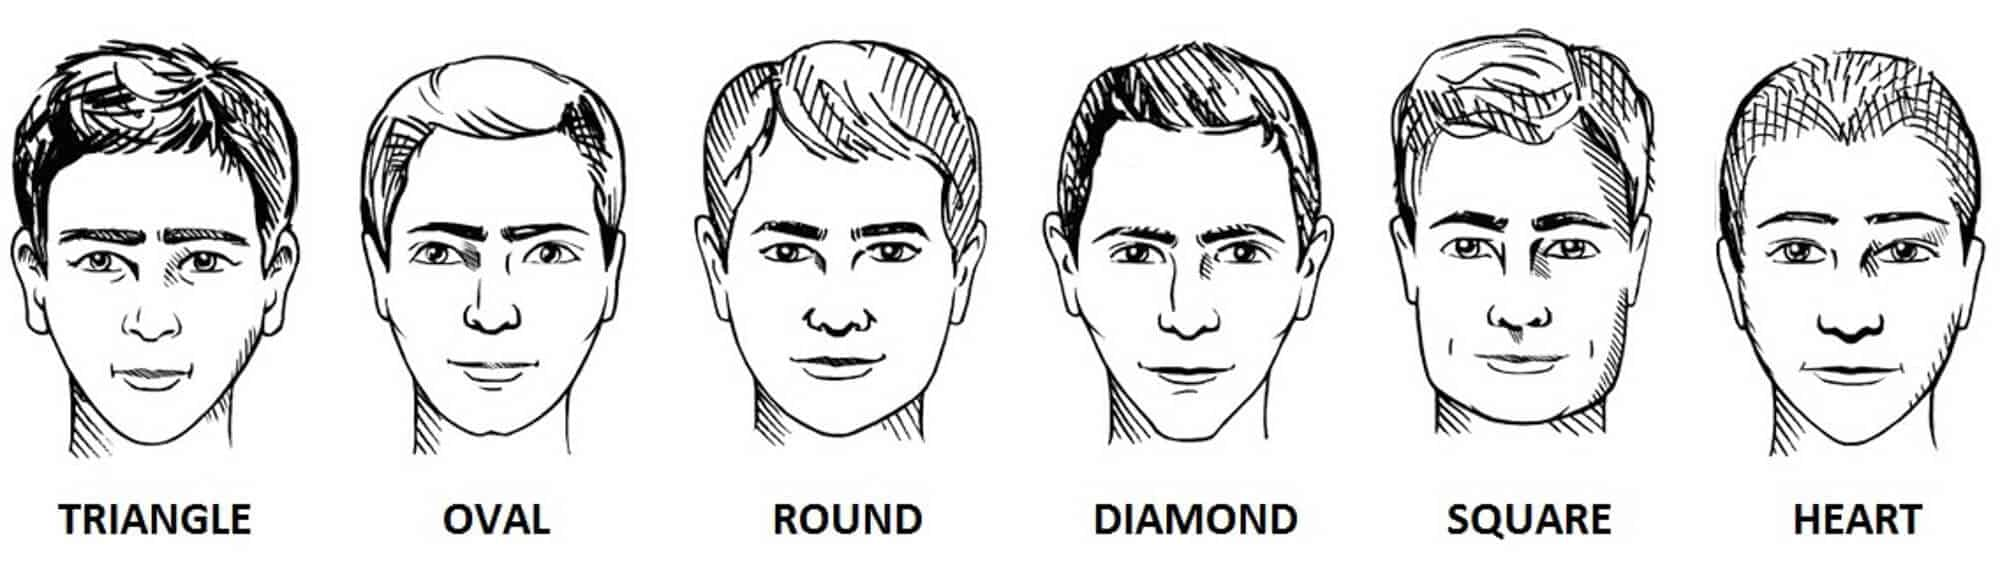 How To Get The Best Haircut For Your Face Shape Gentlemans Gazette